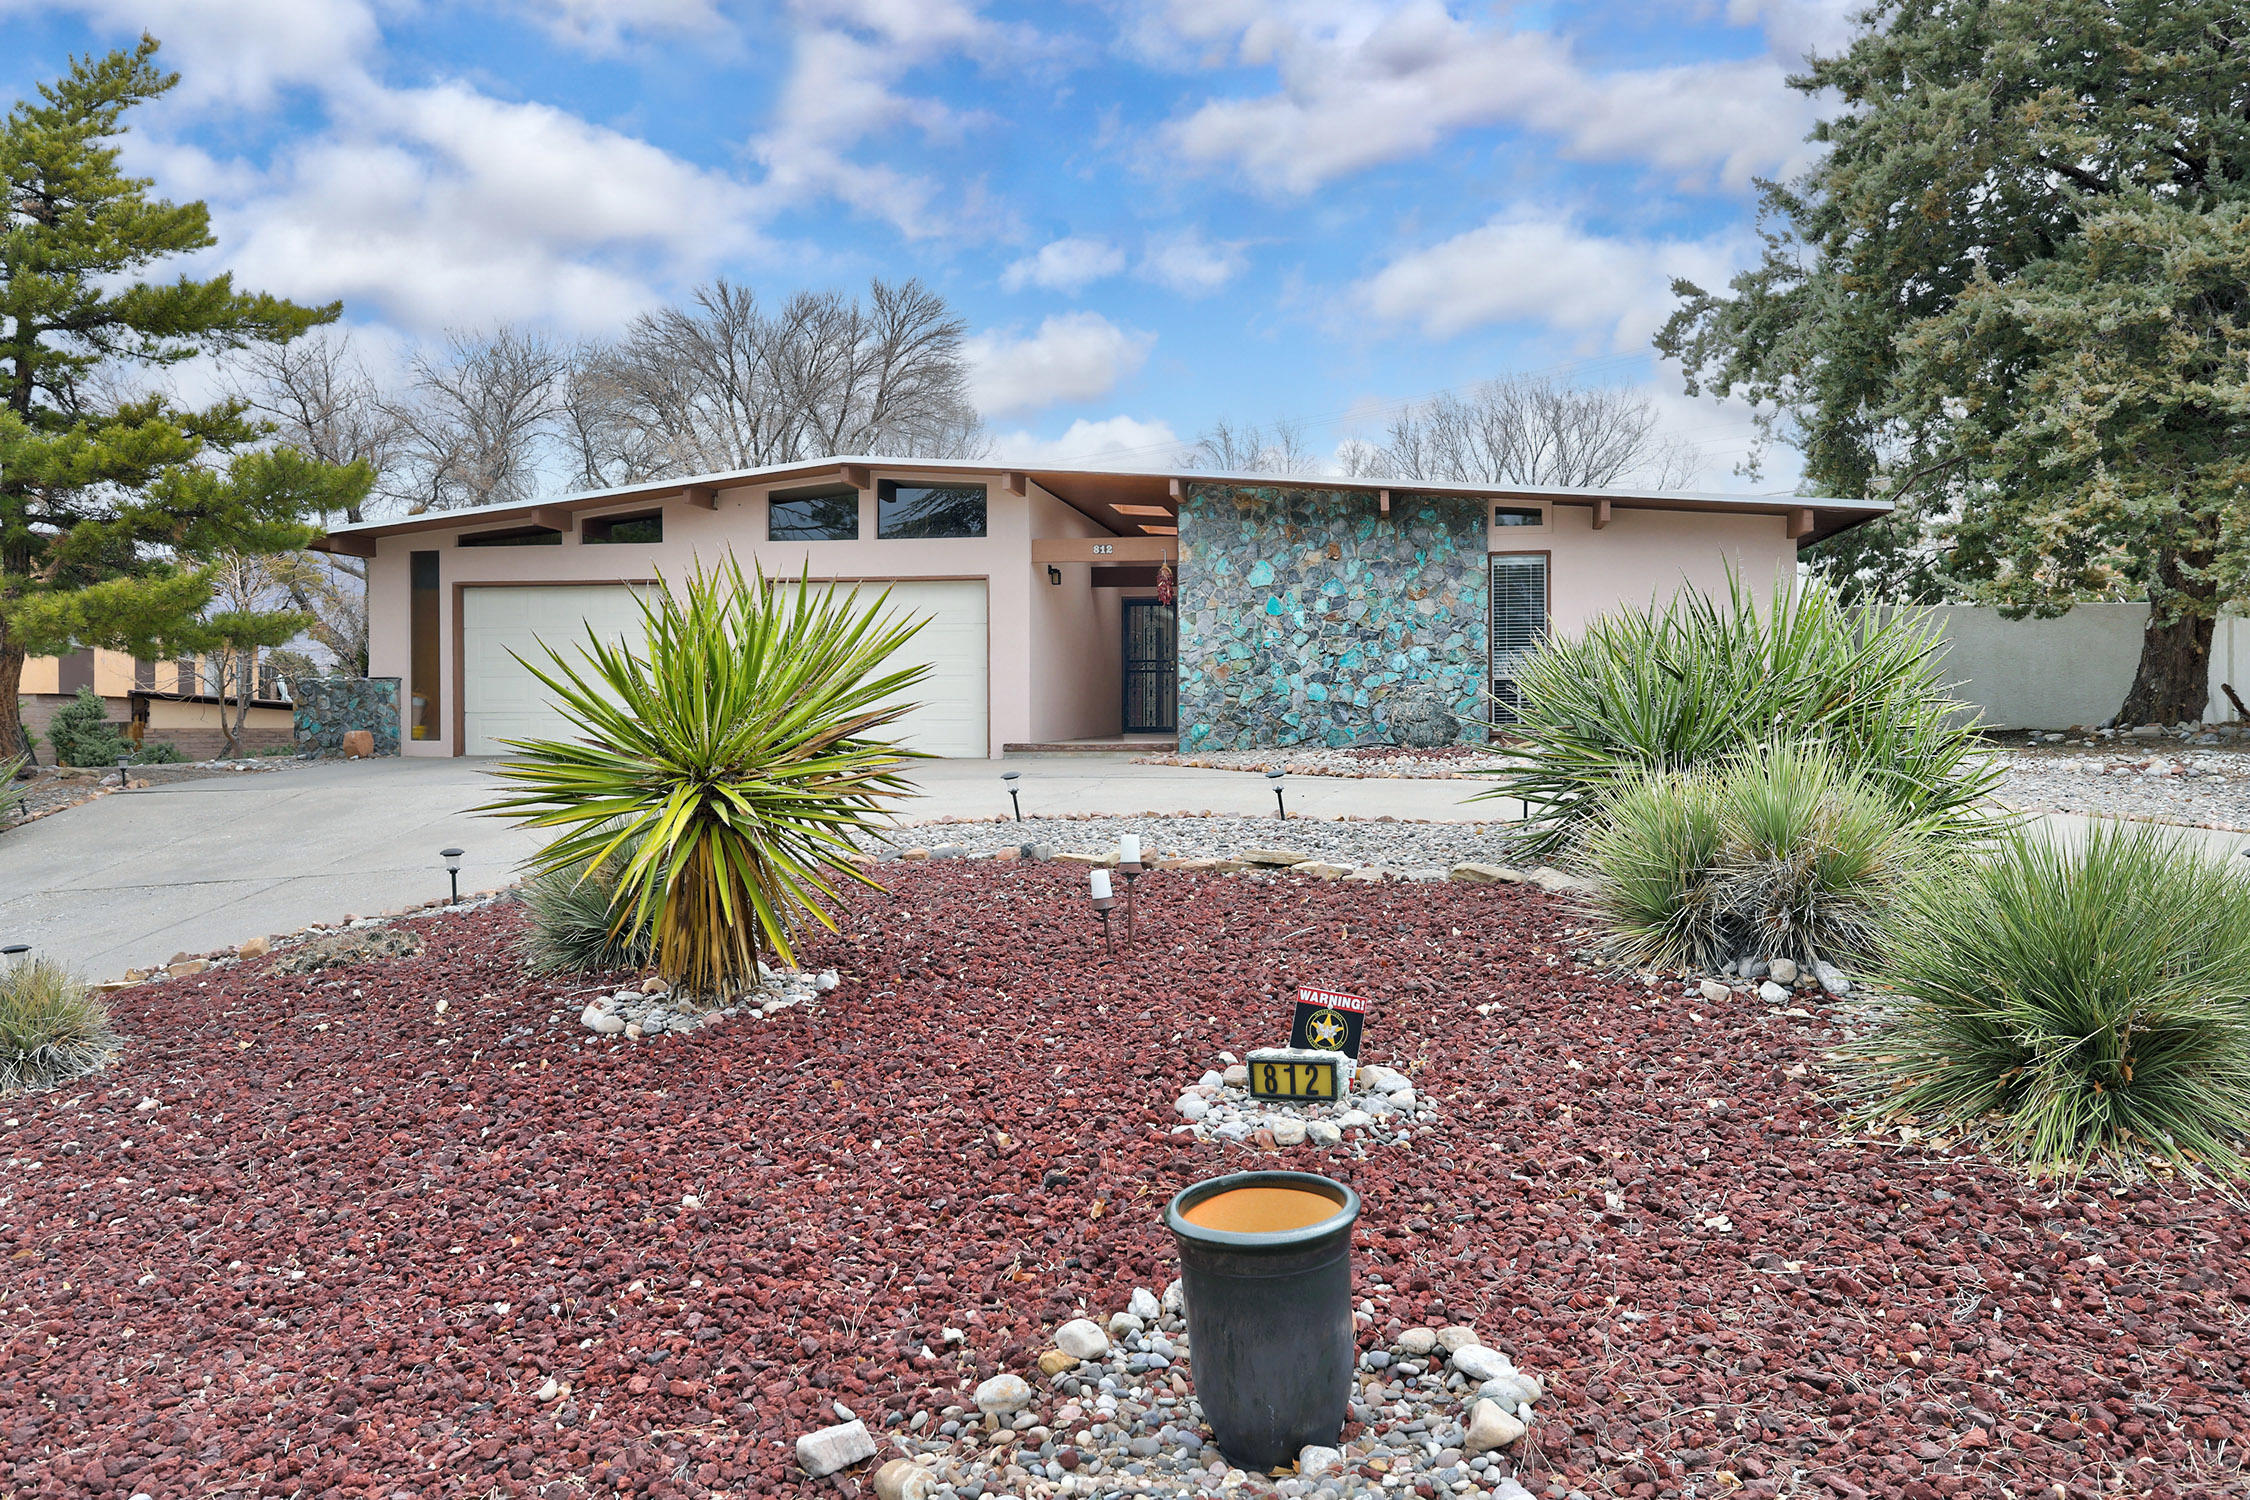 A Mid Century Modern, Light Filled, UPDATED BEAUTY with a gate to the Golf Course!!  Corner lot, circular drive, OPEN FLOORPLAN with gleaming wood floors and Tall tongue and groove ceilings!  Cook's updated Kitchen with SS appliances and OPEN to both Spacious Great room with stone fireplace and wet bar, Plus open to Dining Room with room for everyone.  Owner's suite has updated bath and large walk-in closet.  All Bedrooms have walk-in closets and front bedroom has an additional sitting area/office. Backyard is perfect for outdoor enjoying open and covered patios views and gate to golf course!! COME SEE!!